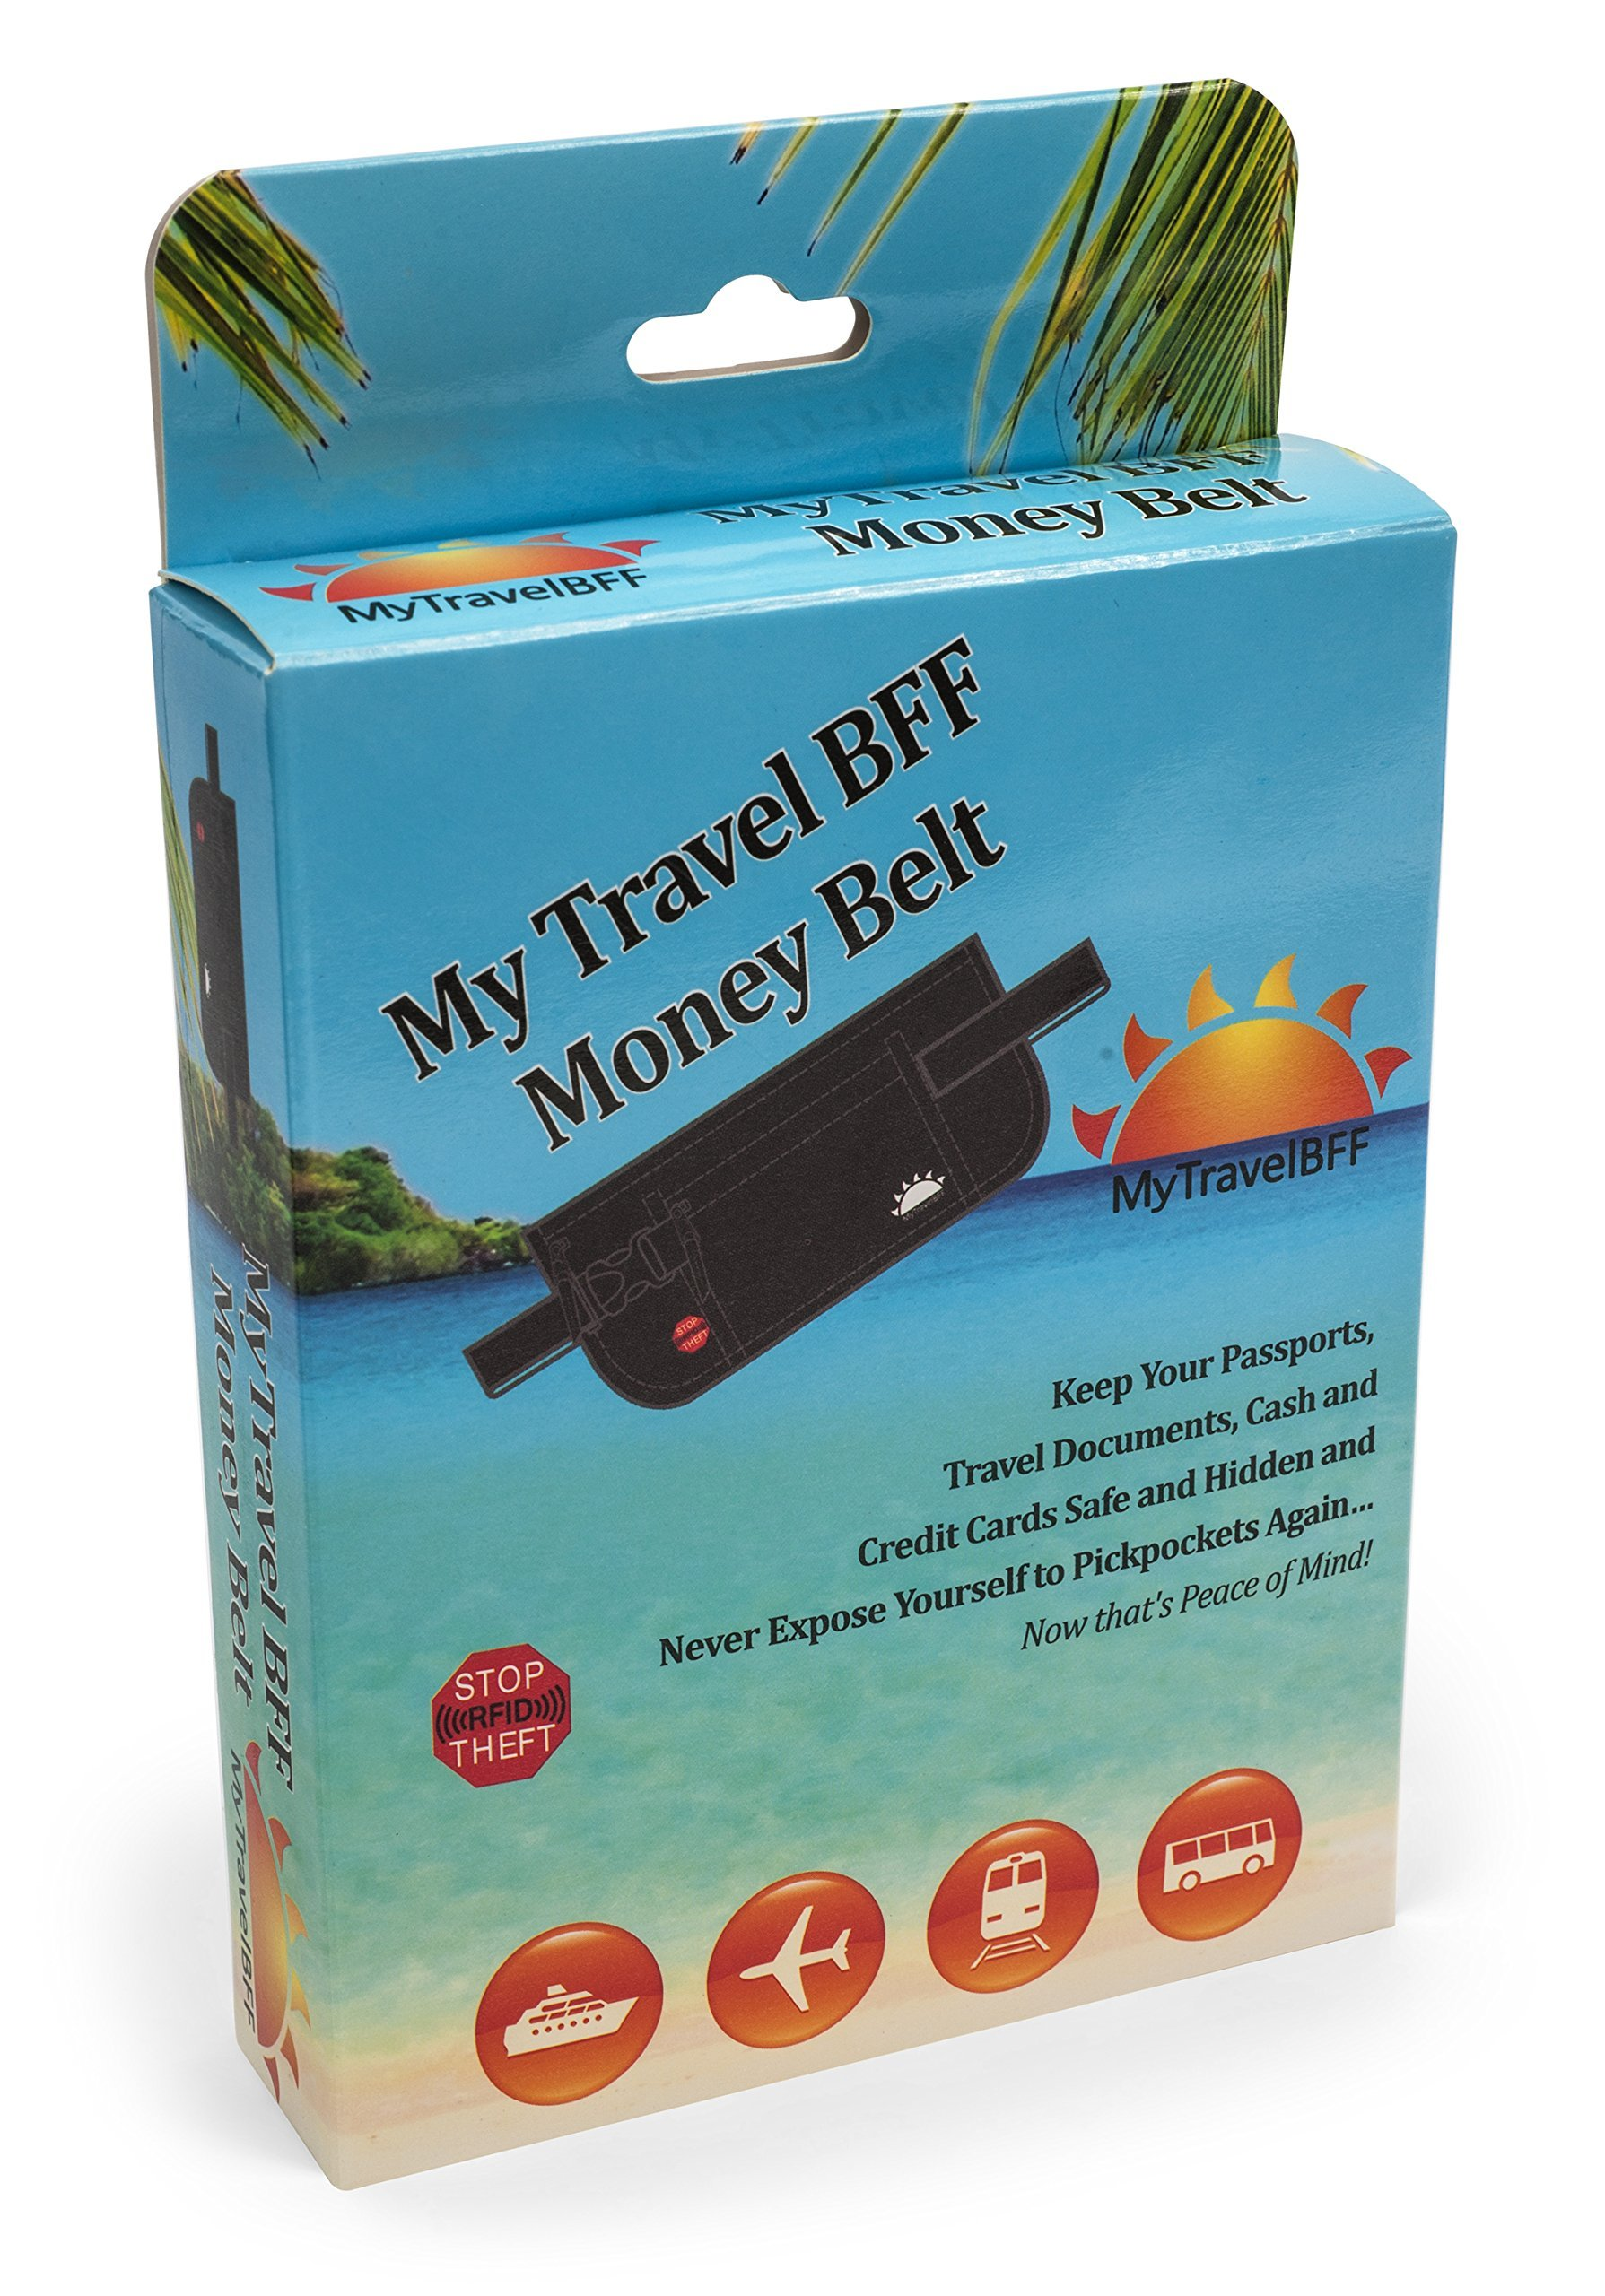 RFID Blocking Money Belt for Travel by MyTravelBFF, Keep Your Passport Hidden! by MyTravelBFF (Image #2)